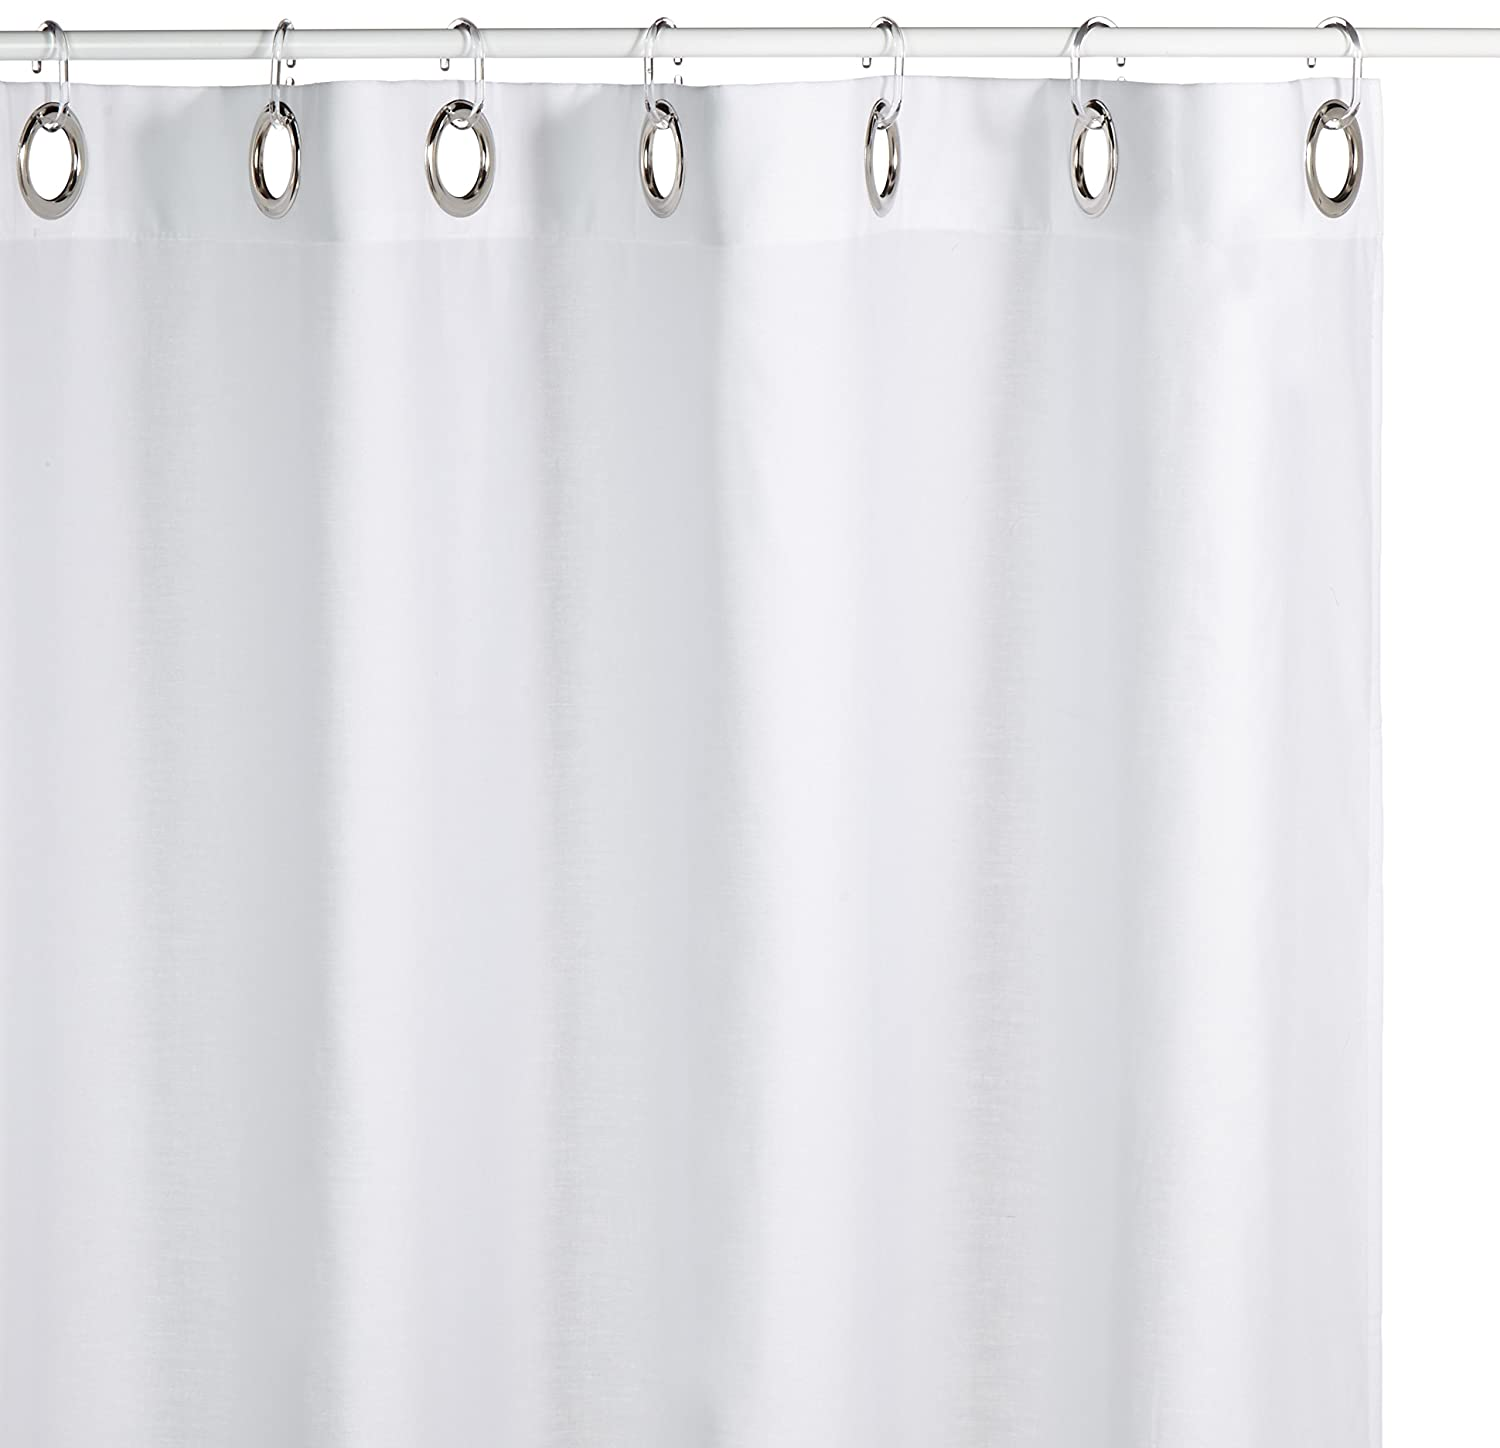 Amazon Sealskin Extra Long Hookless Shower Curtain 72 X 78 Inch Coloris Off White Cotton Home Kitchen